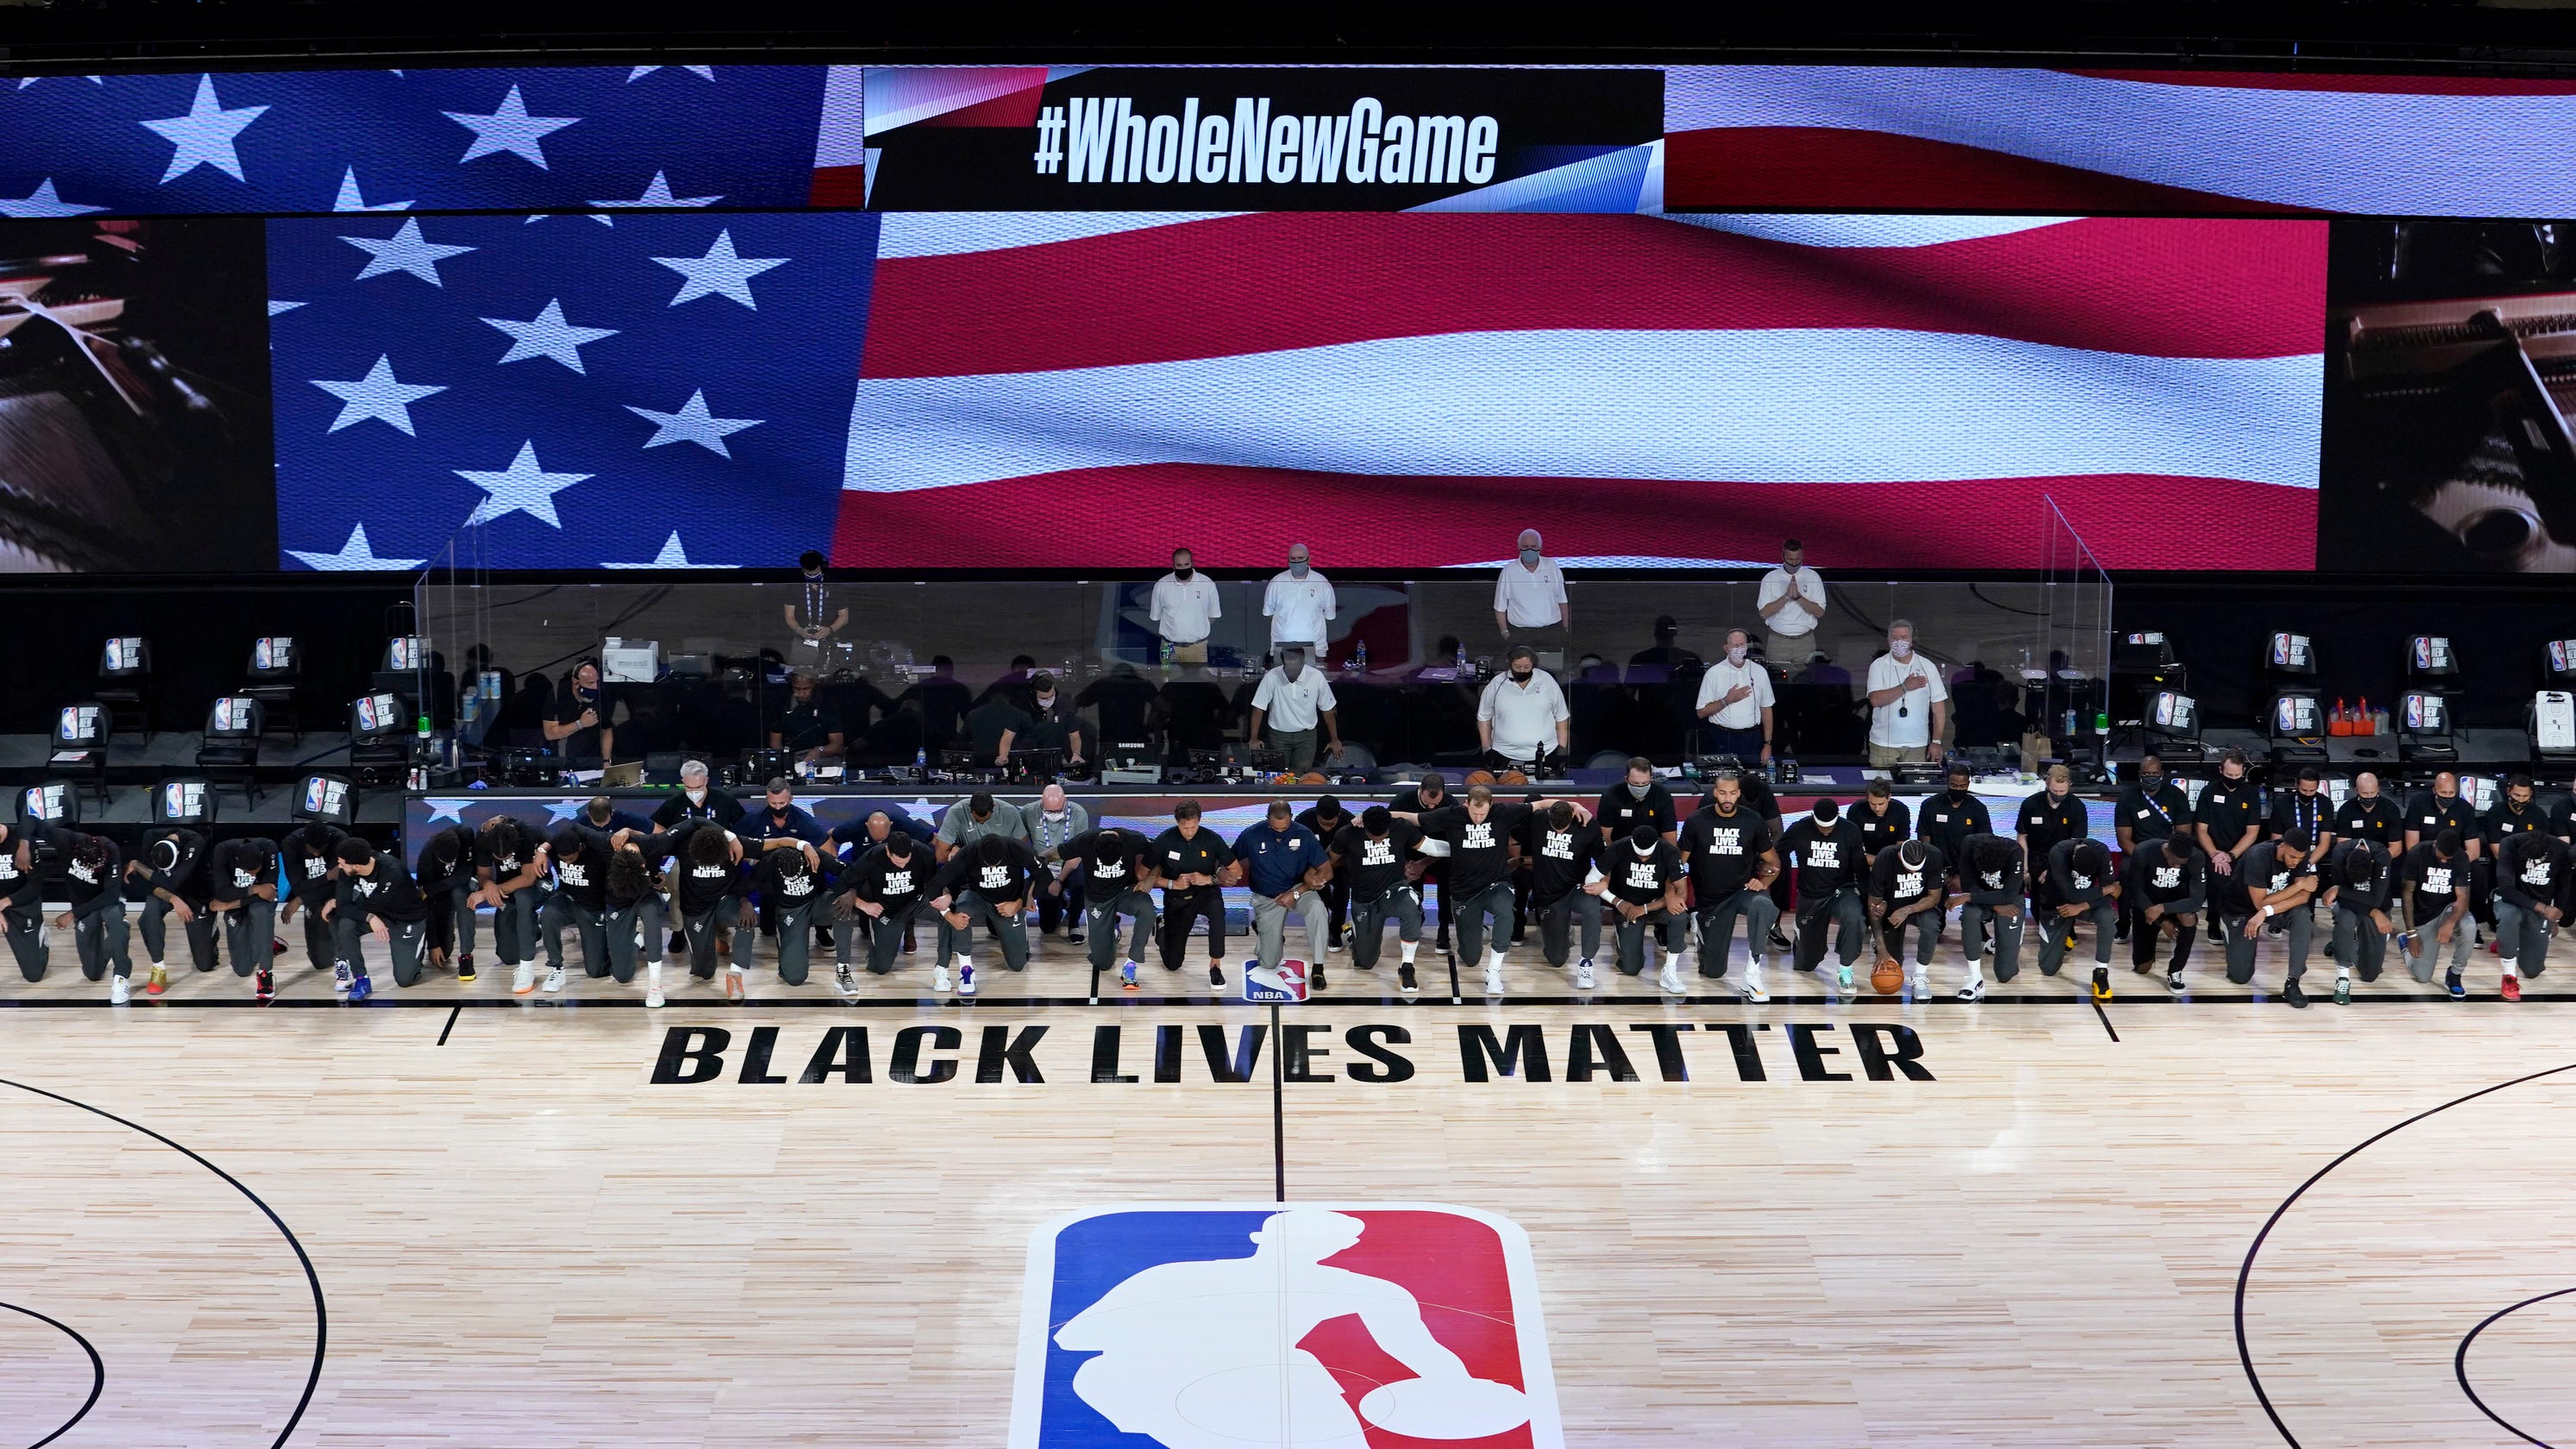 Pelicans and Jazz players kneel for national anthem